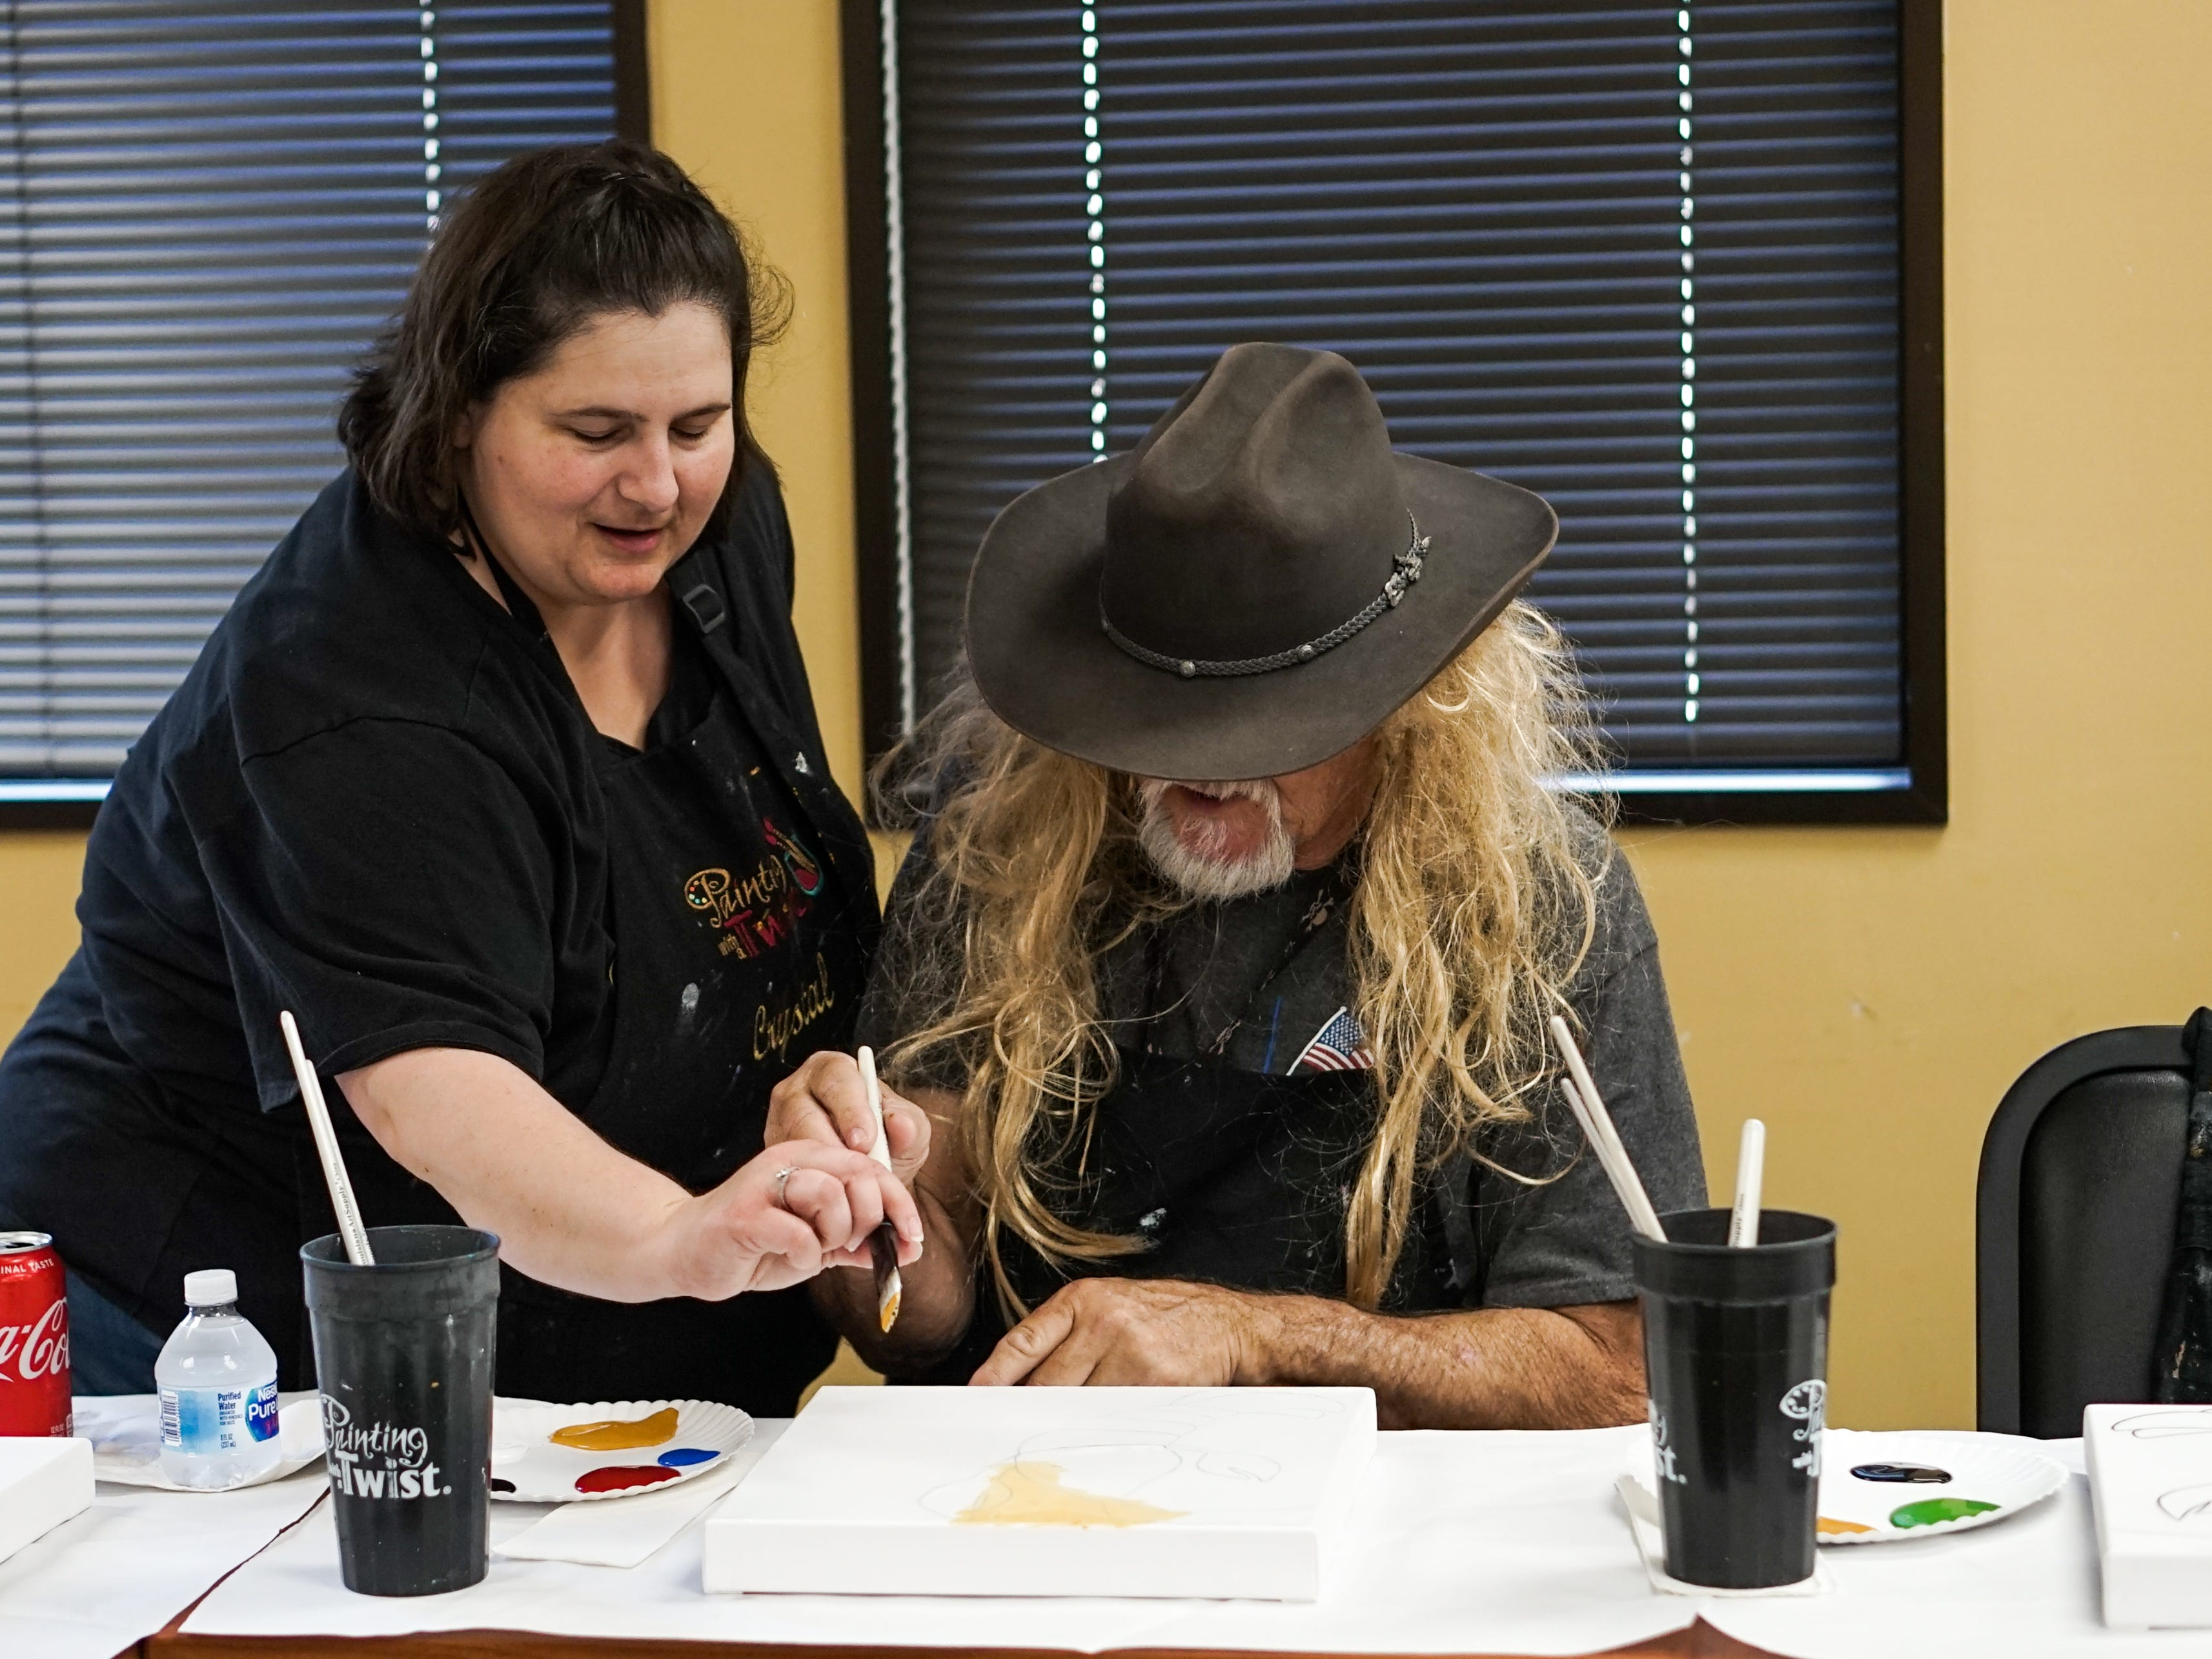 Former stroke patients who are members of Lafayette General Medical Center's Acadiana Stroke Support Group celebrate their recovery with an event May 14 in conjunction with Painting with a Twist.